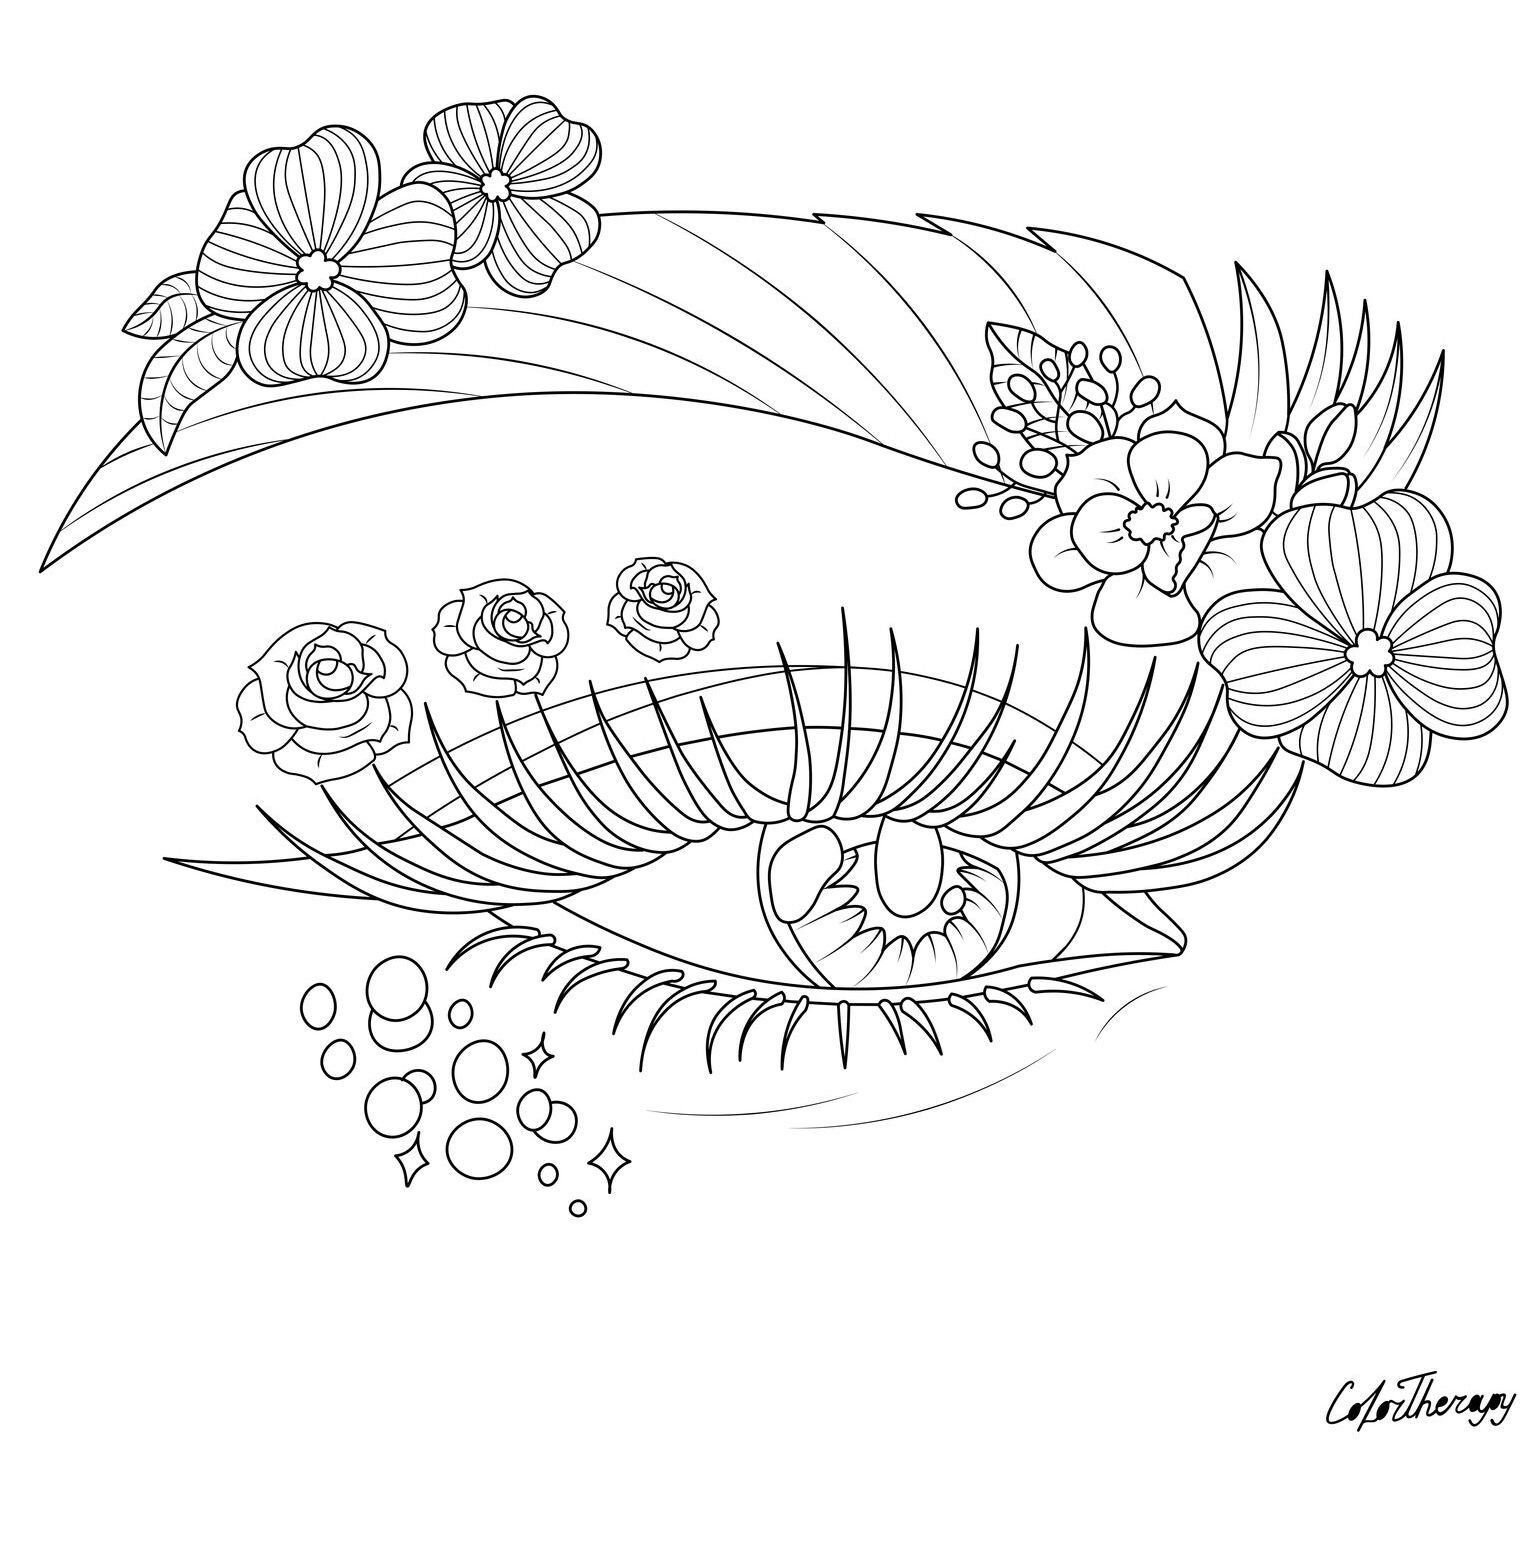 Most Recent Photos Makeup Coloring Pages Popular The Stunning Point In Relation To Shading Is It Can In 2021 Coloring Pages Tumblr Coloring Pages Tattoo Coloring Book [ 1546 x 1529 Pixel ]